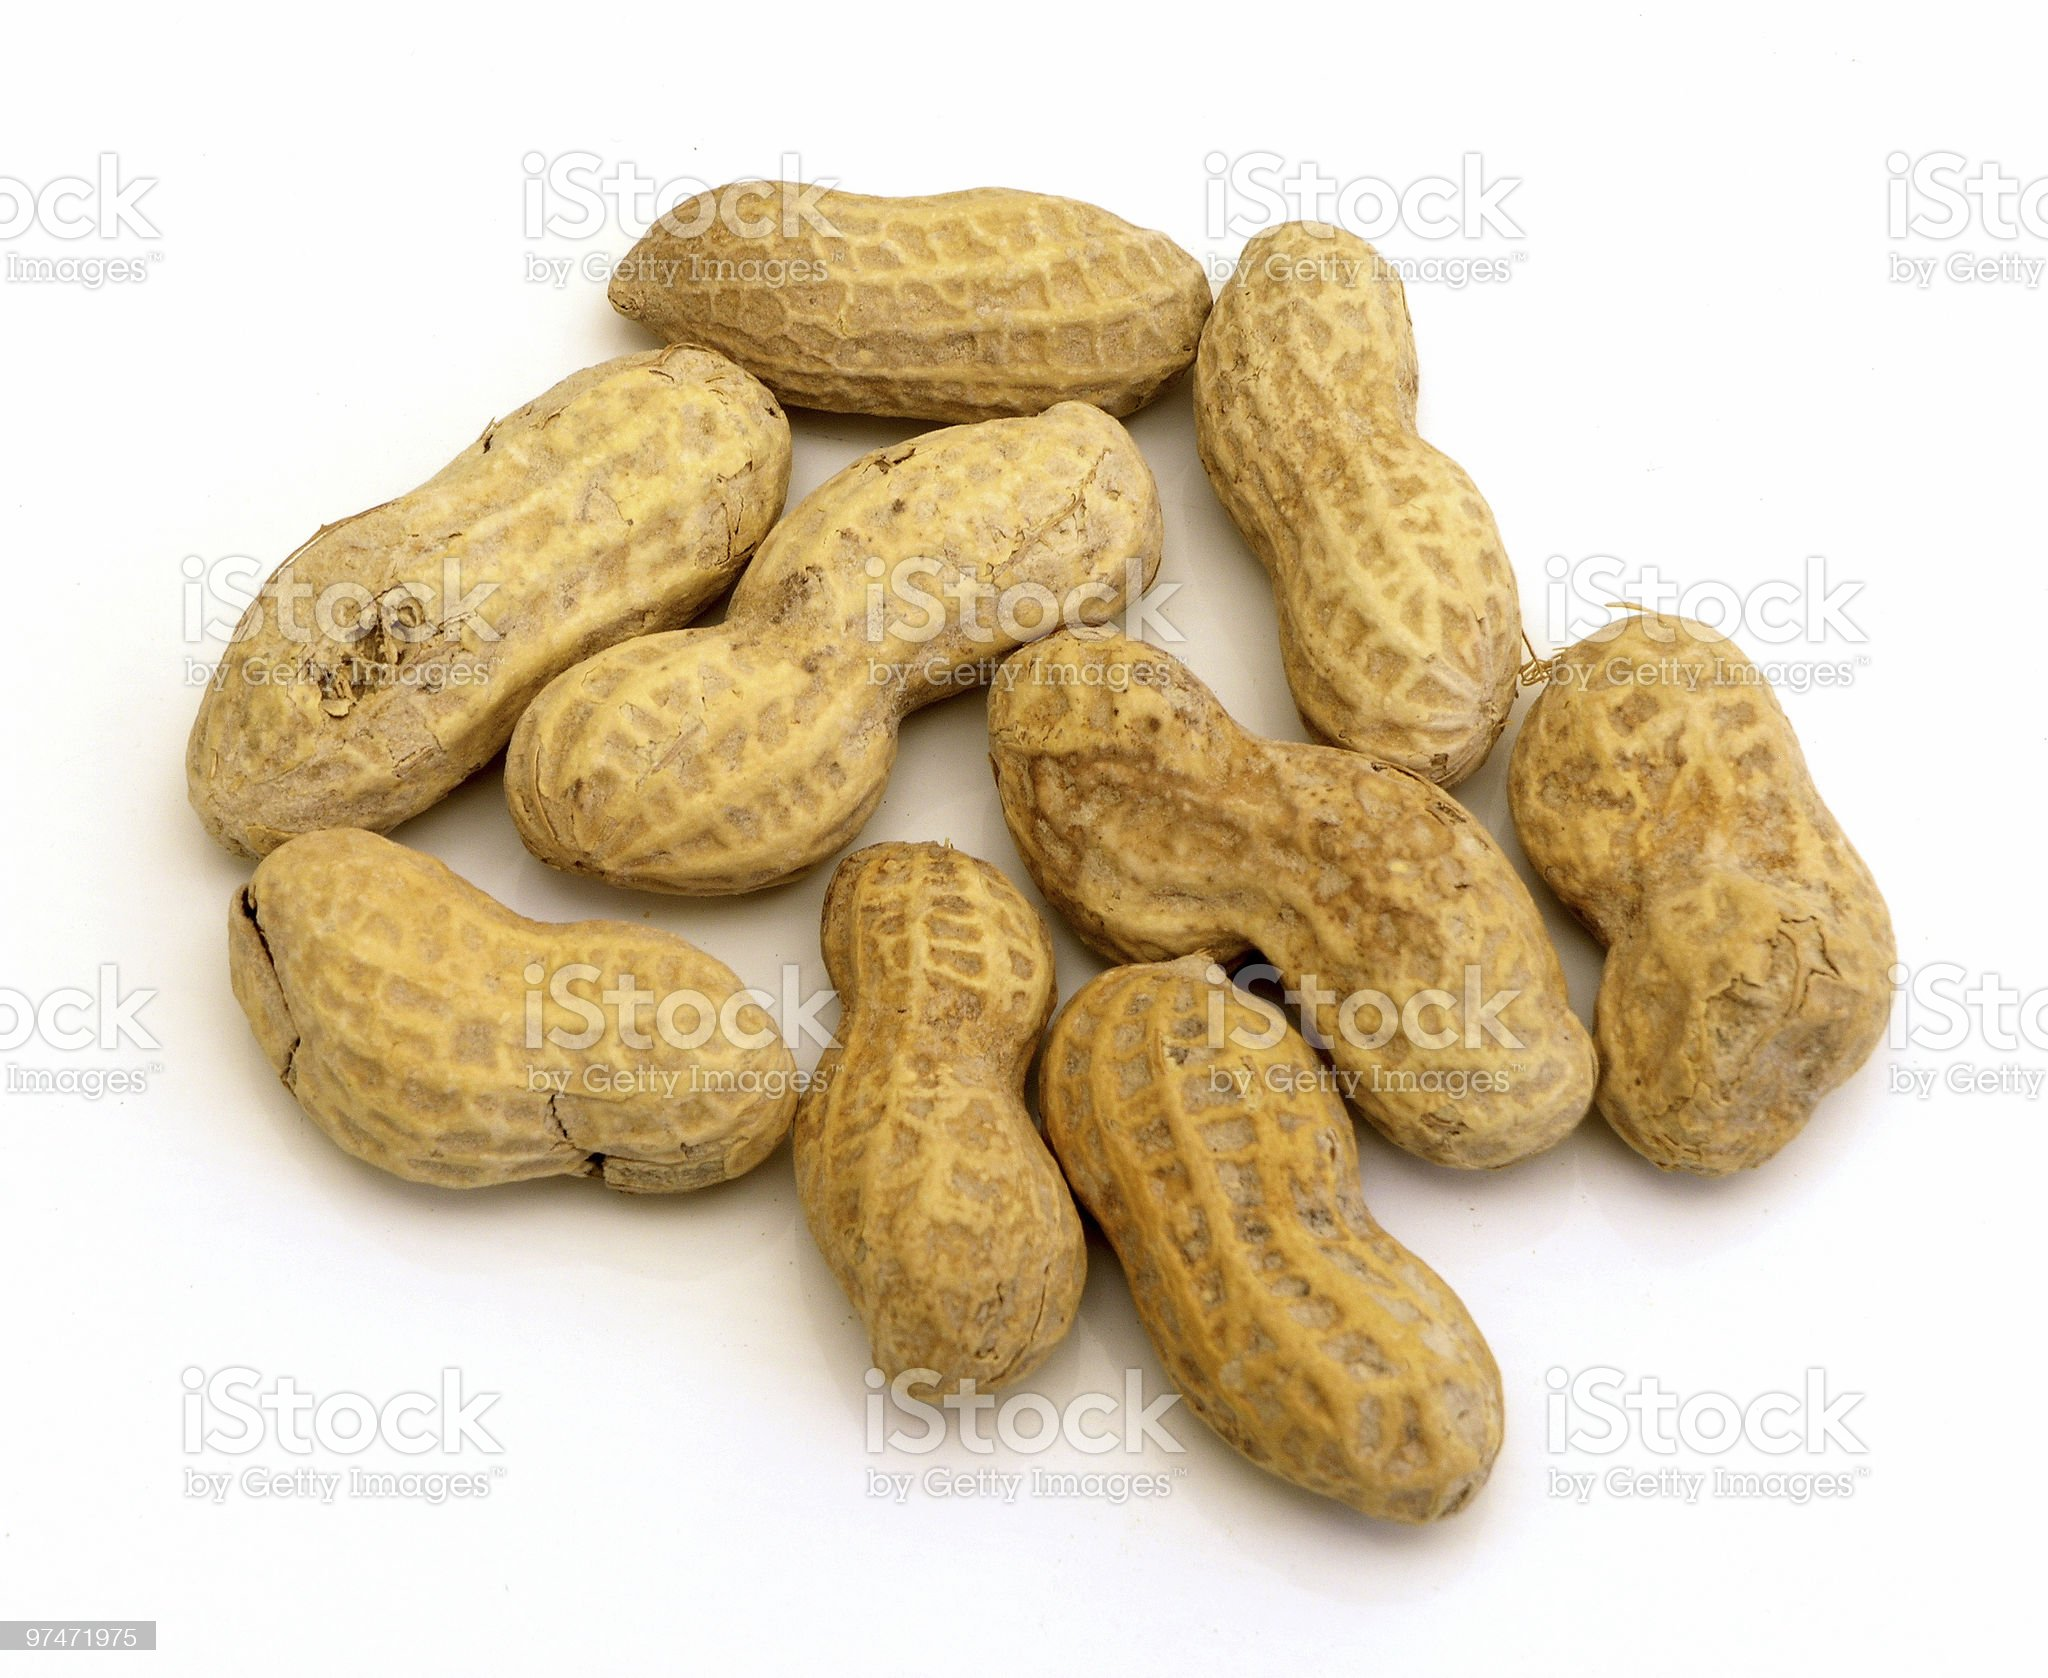 Pile of Peanuts royalty-free stock photo